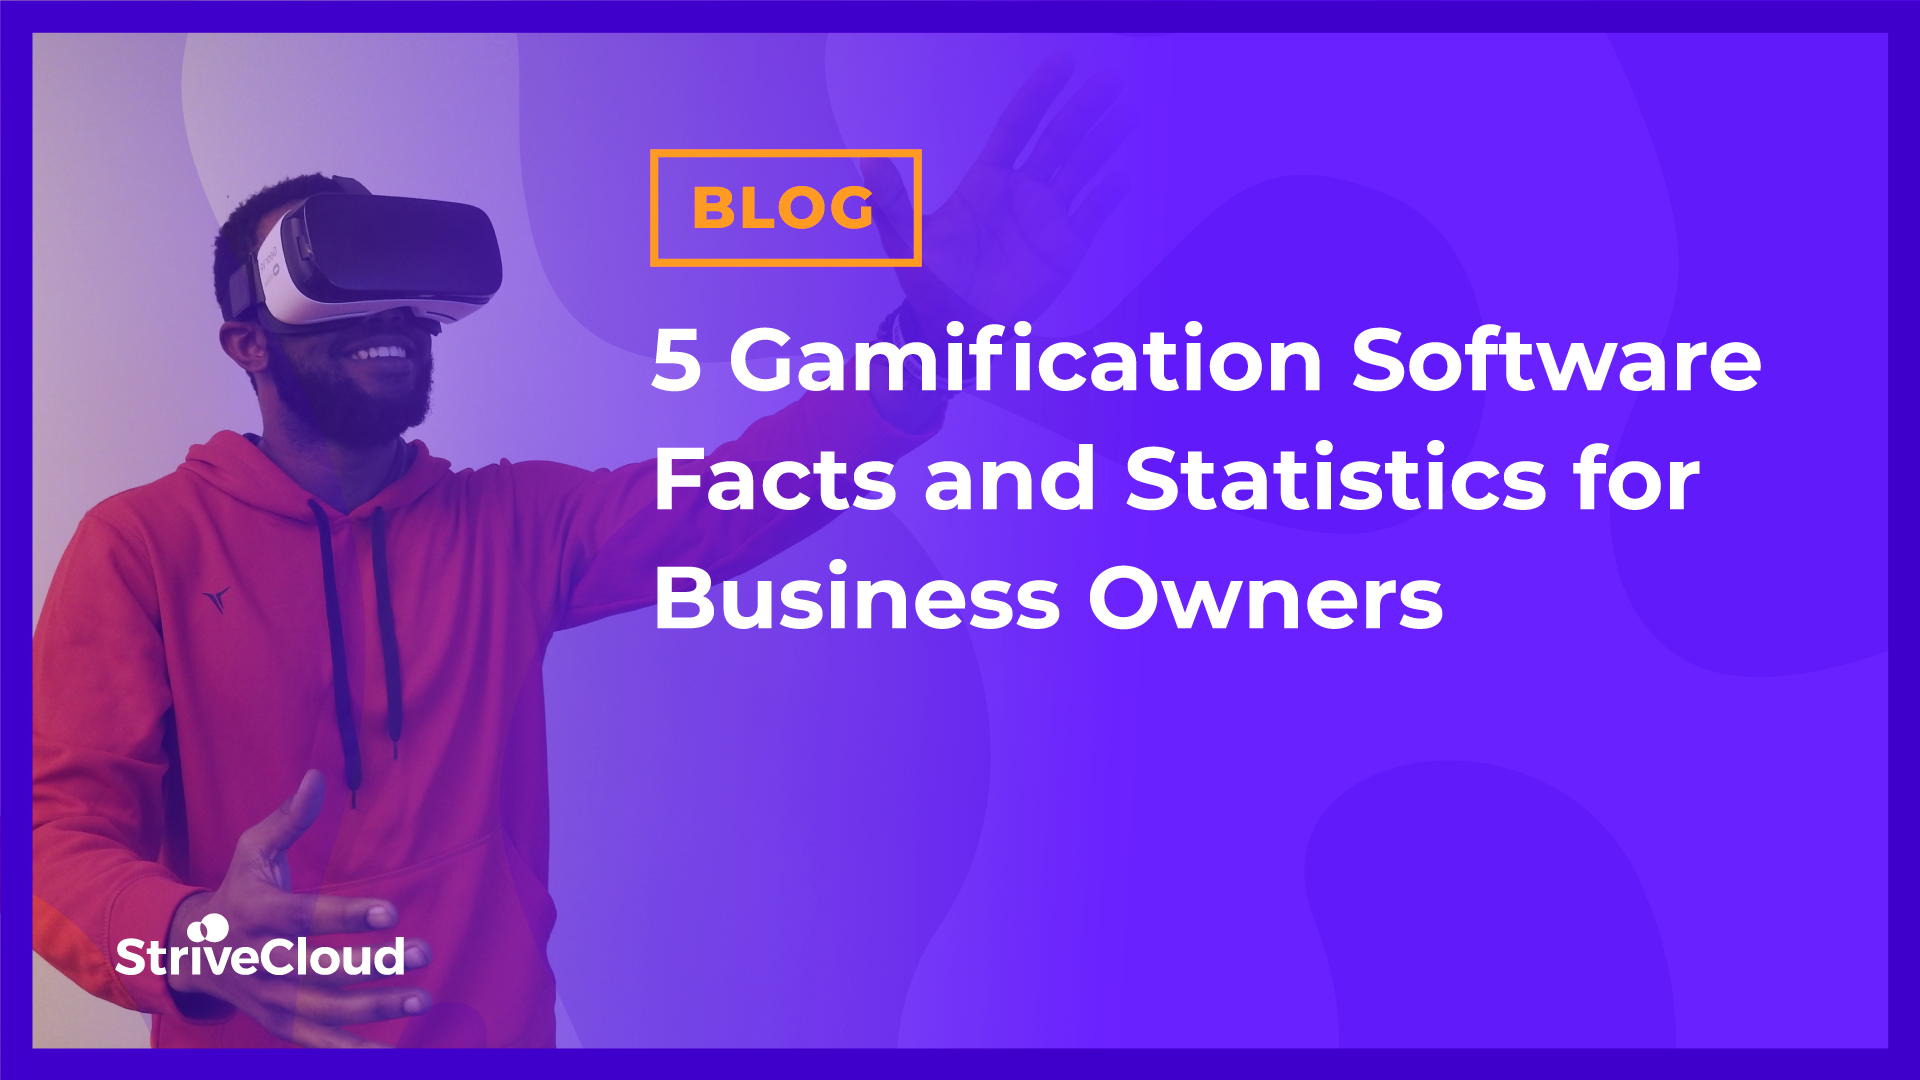 5 Gamification Software Facts and Statistics for Business Owners